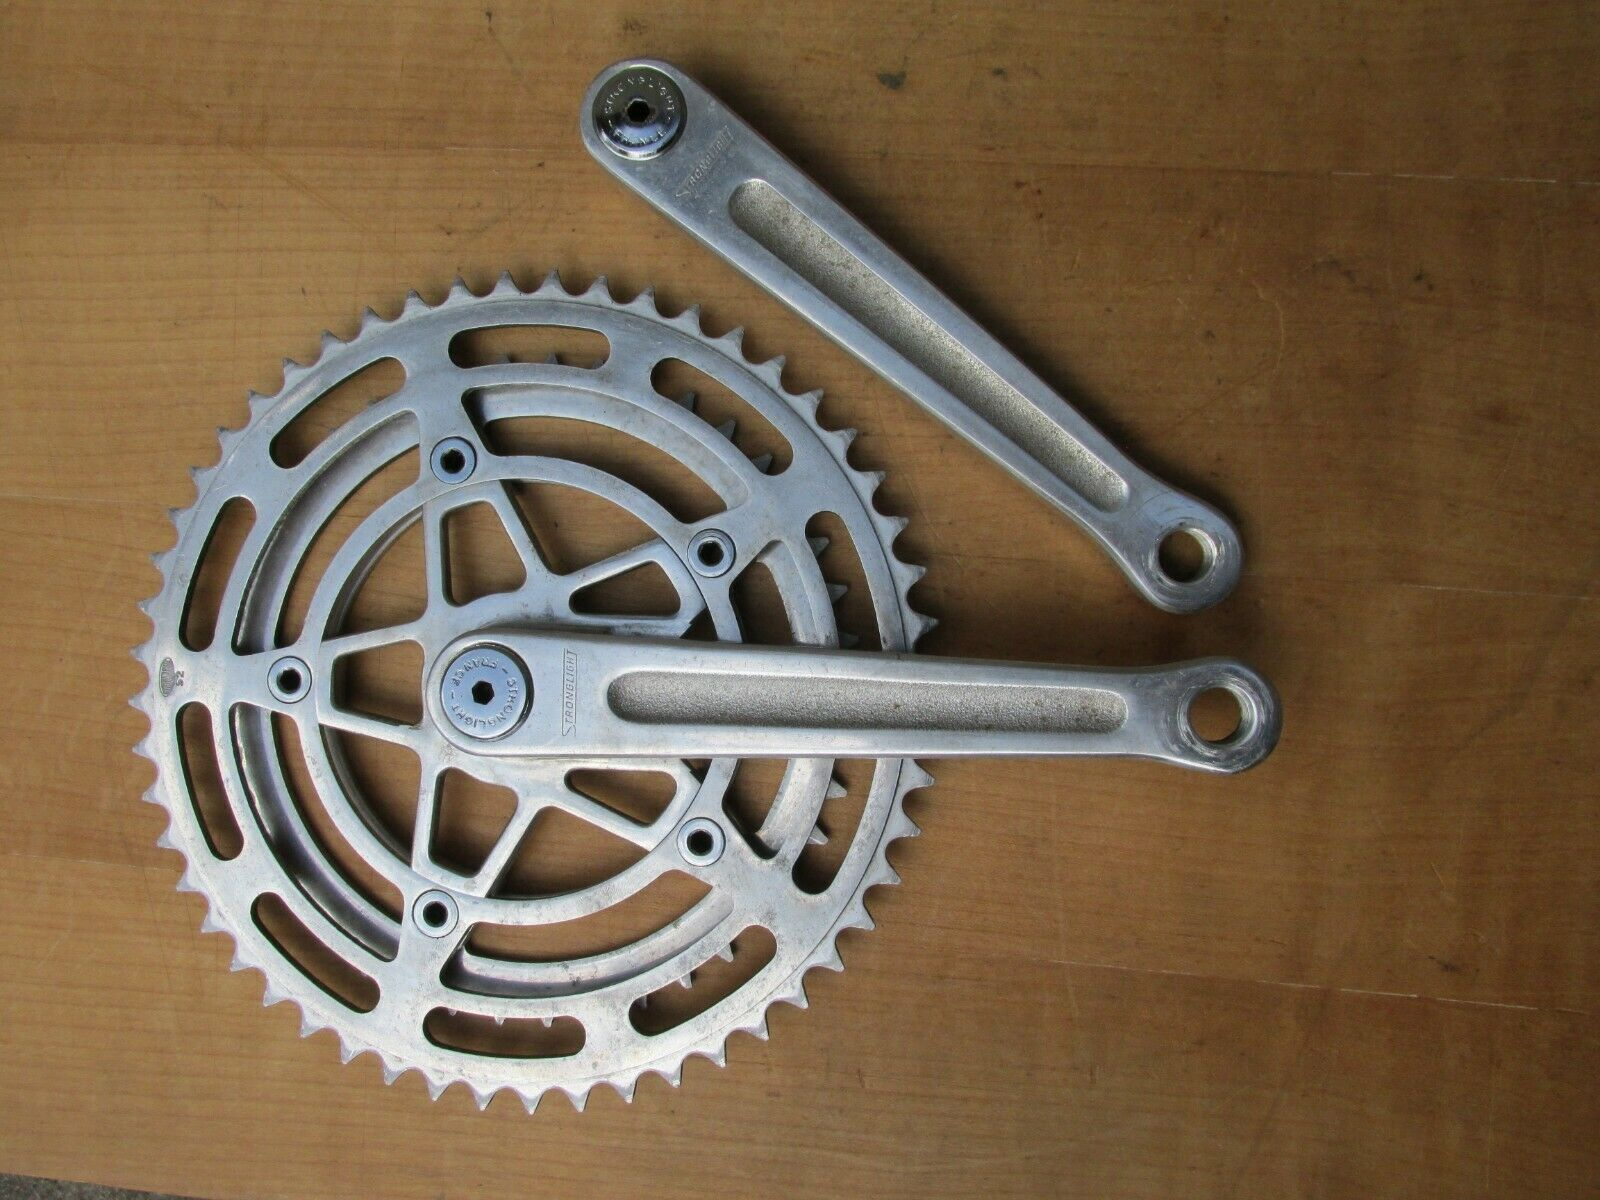 STRONGLIGHT 105 bis PEDALIER VELO COURSE ROAD RACING Fahrrad CRANKSET 170 42 52